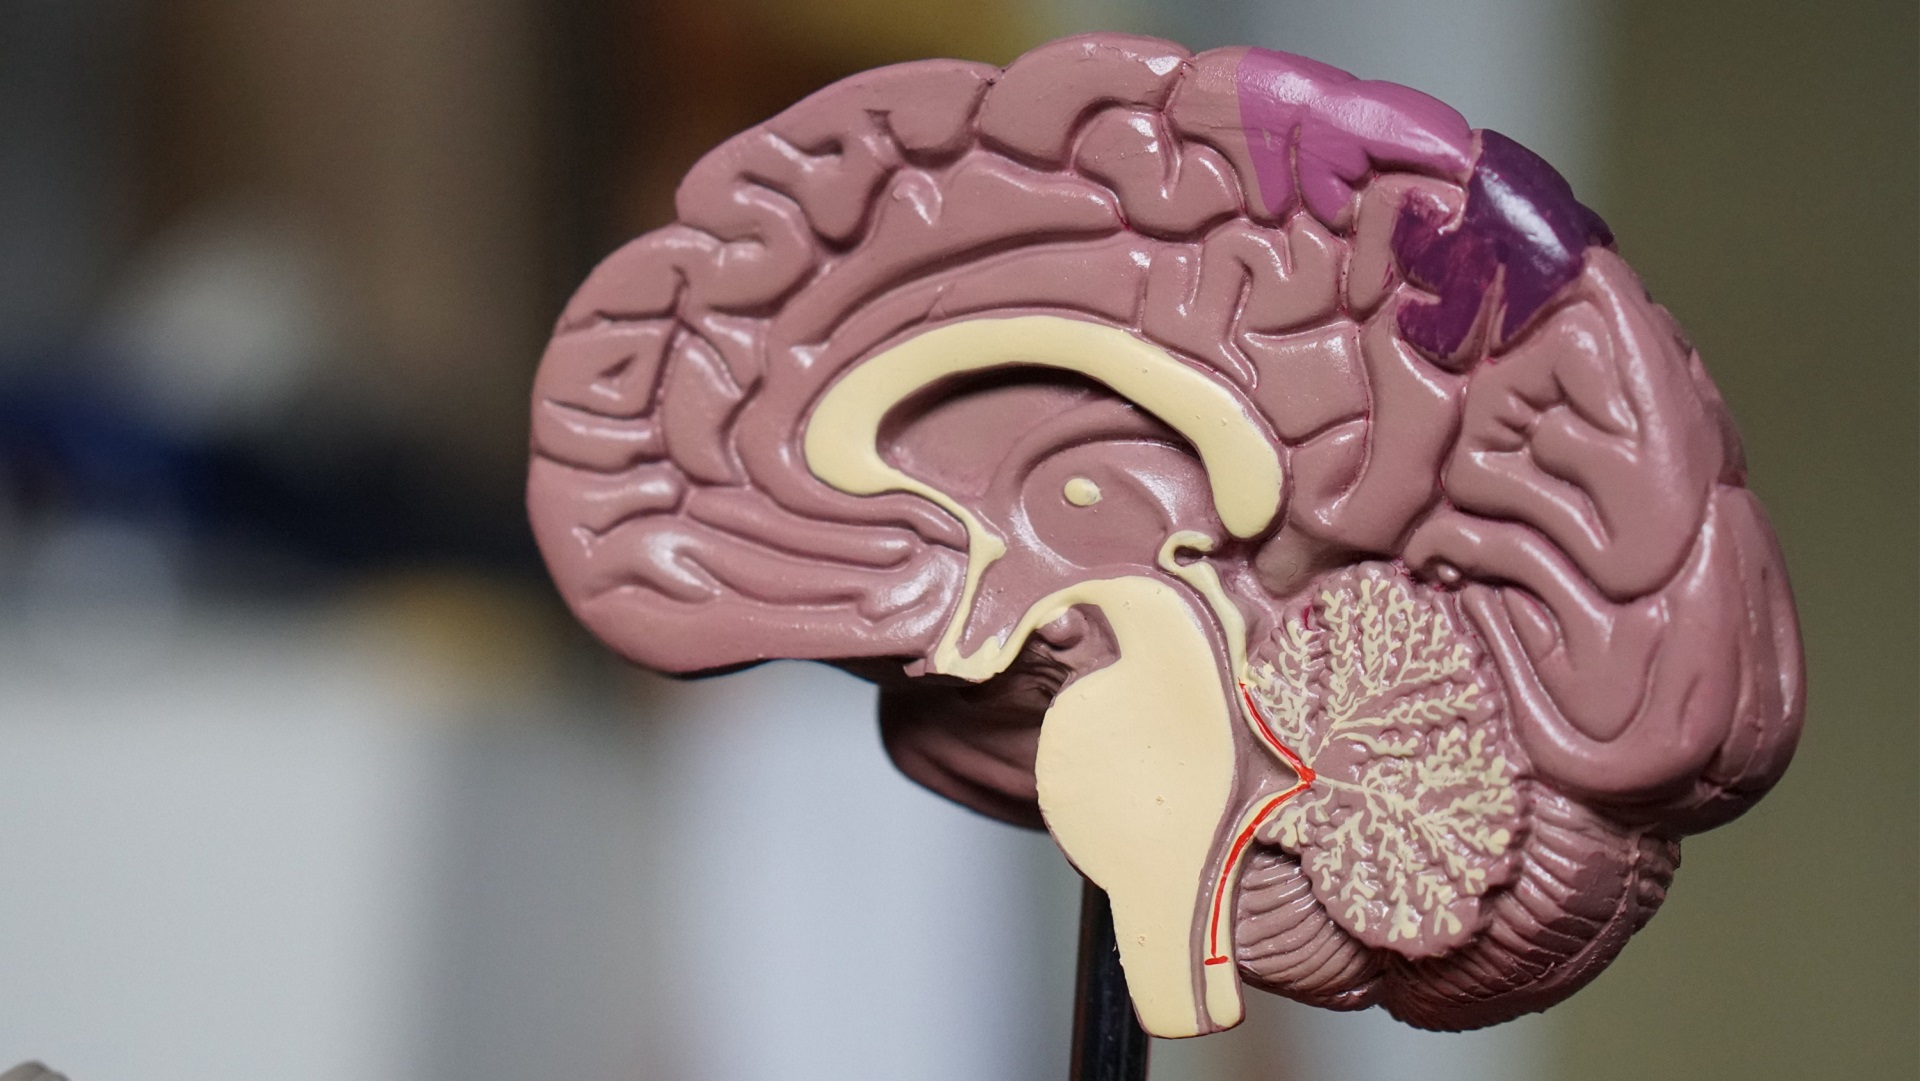 Can't get you outta my head: study finds 'hidden' thoughts in visual part of brain